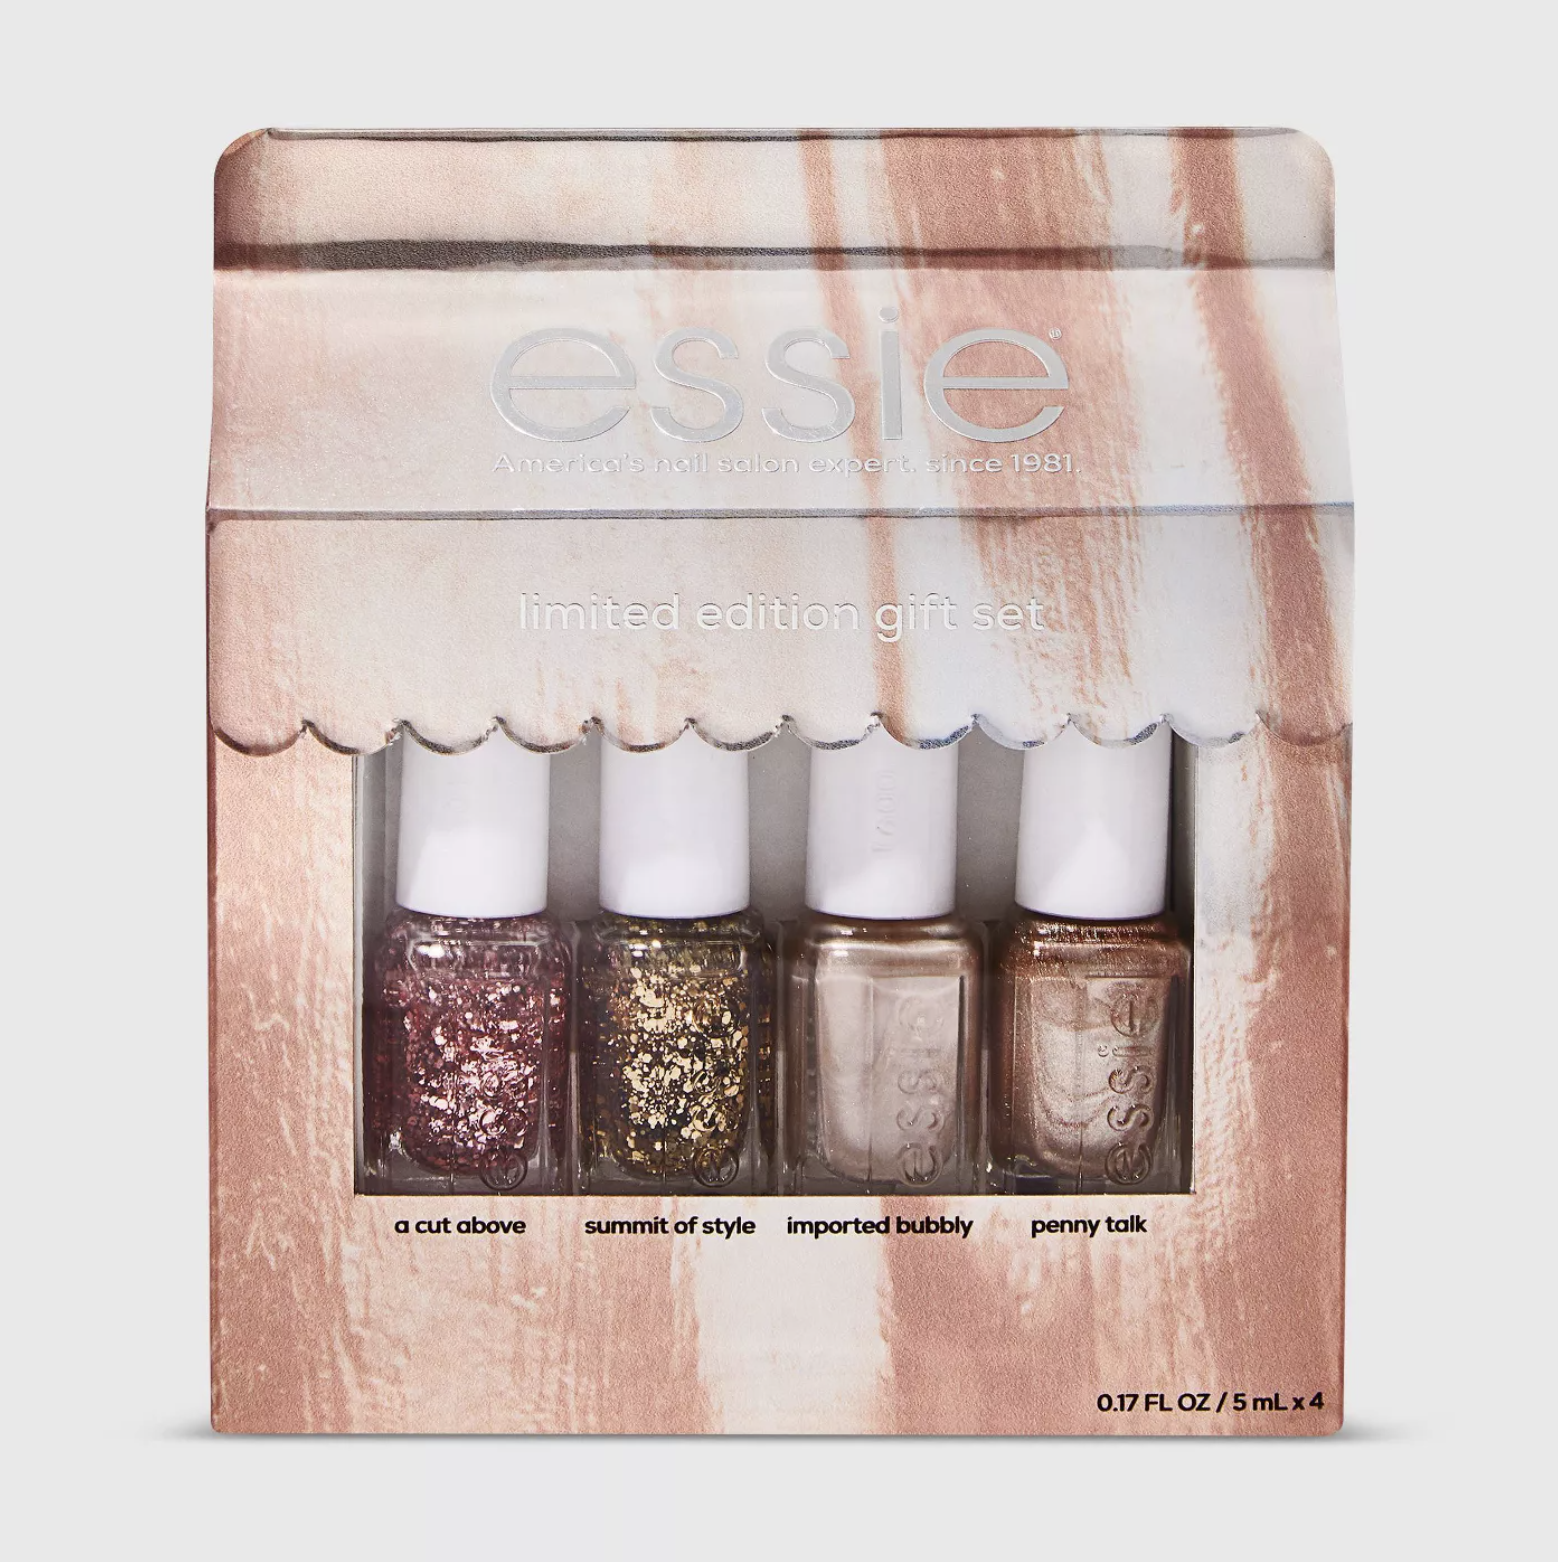 Essie Core Exclusive Mini Nail Polish Gift Set